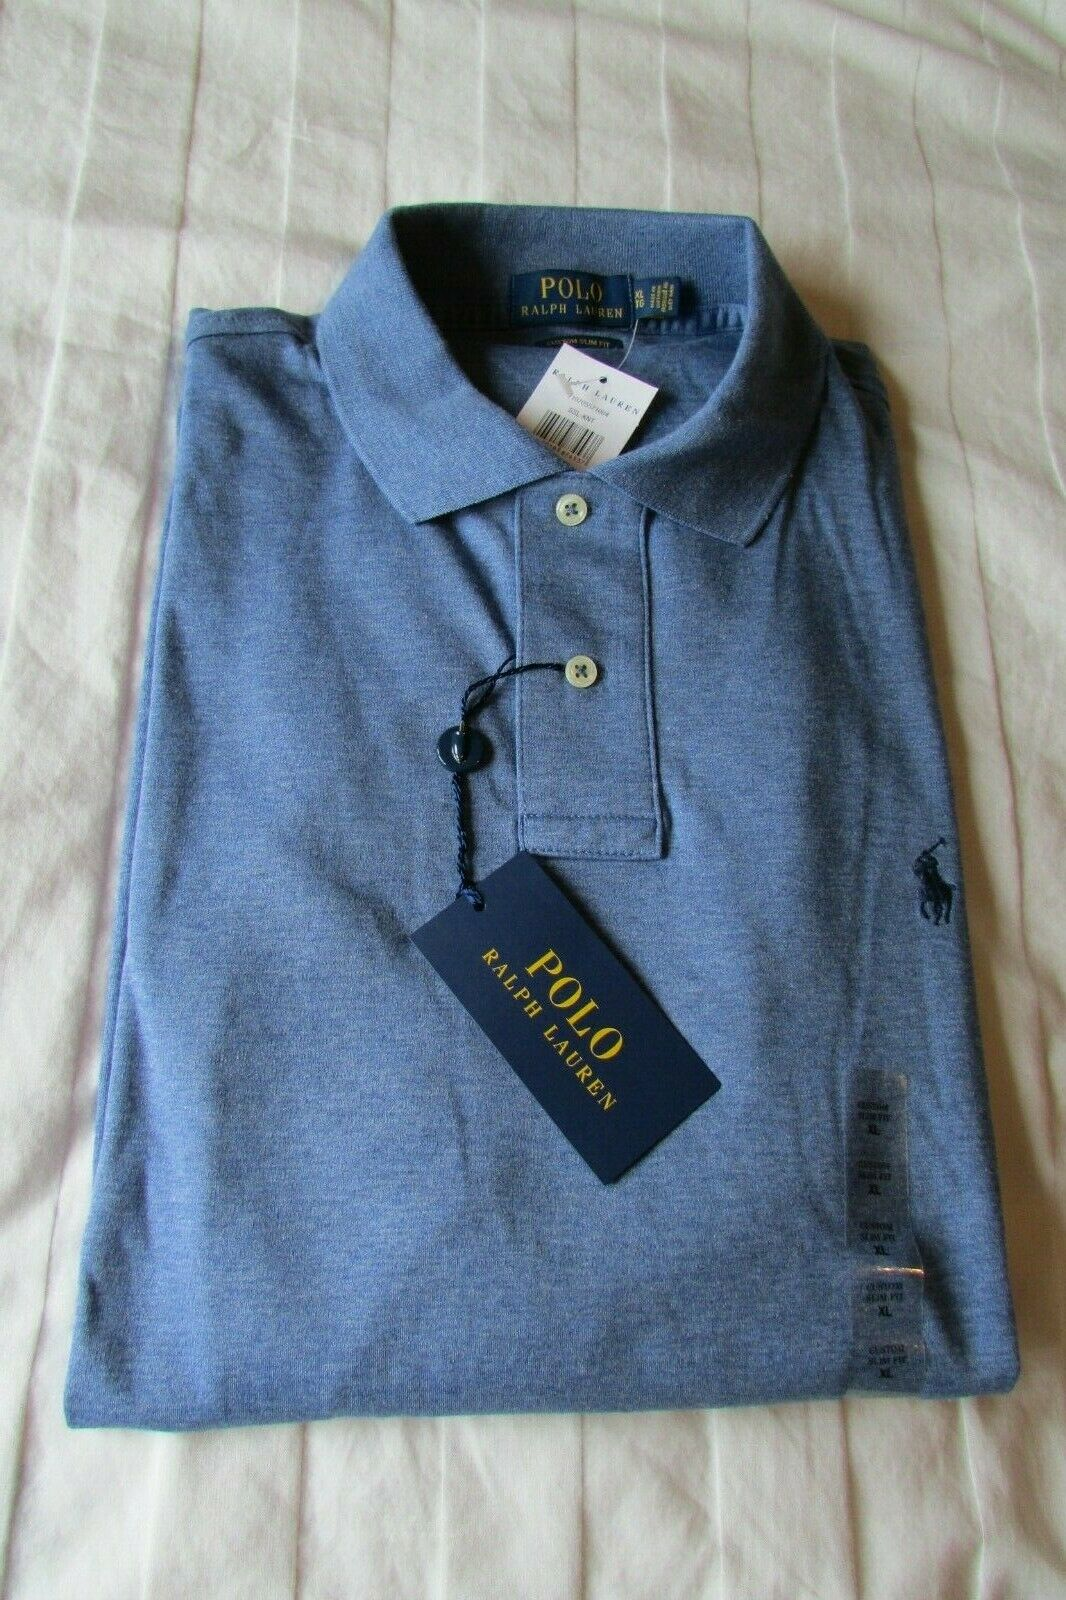 RALPH LAUREN POLO SOFT TOUCH blueE T SHIRT SIZE XL NEW WITH TAGS RRP